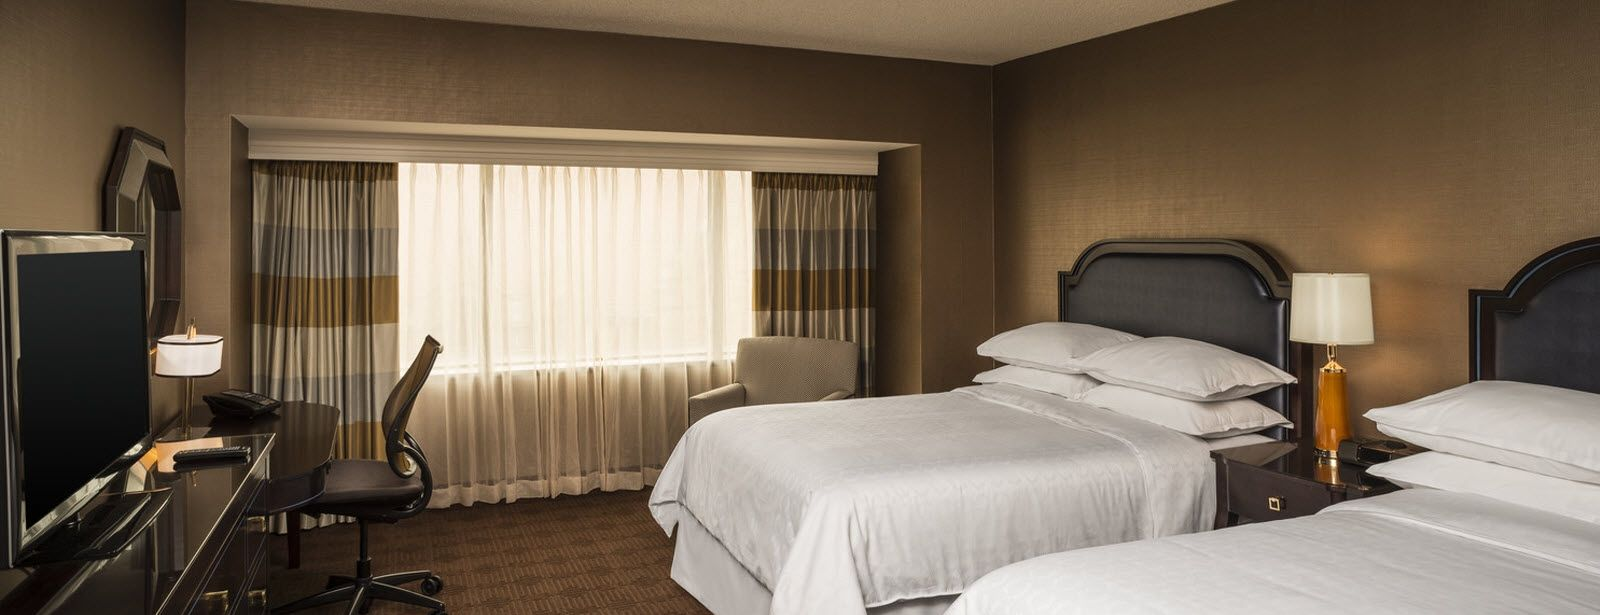 Columbus accommodations - Double Guest Room